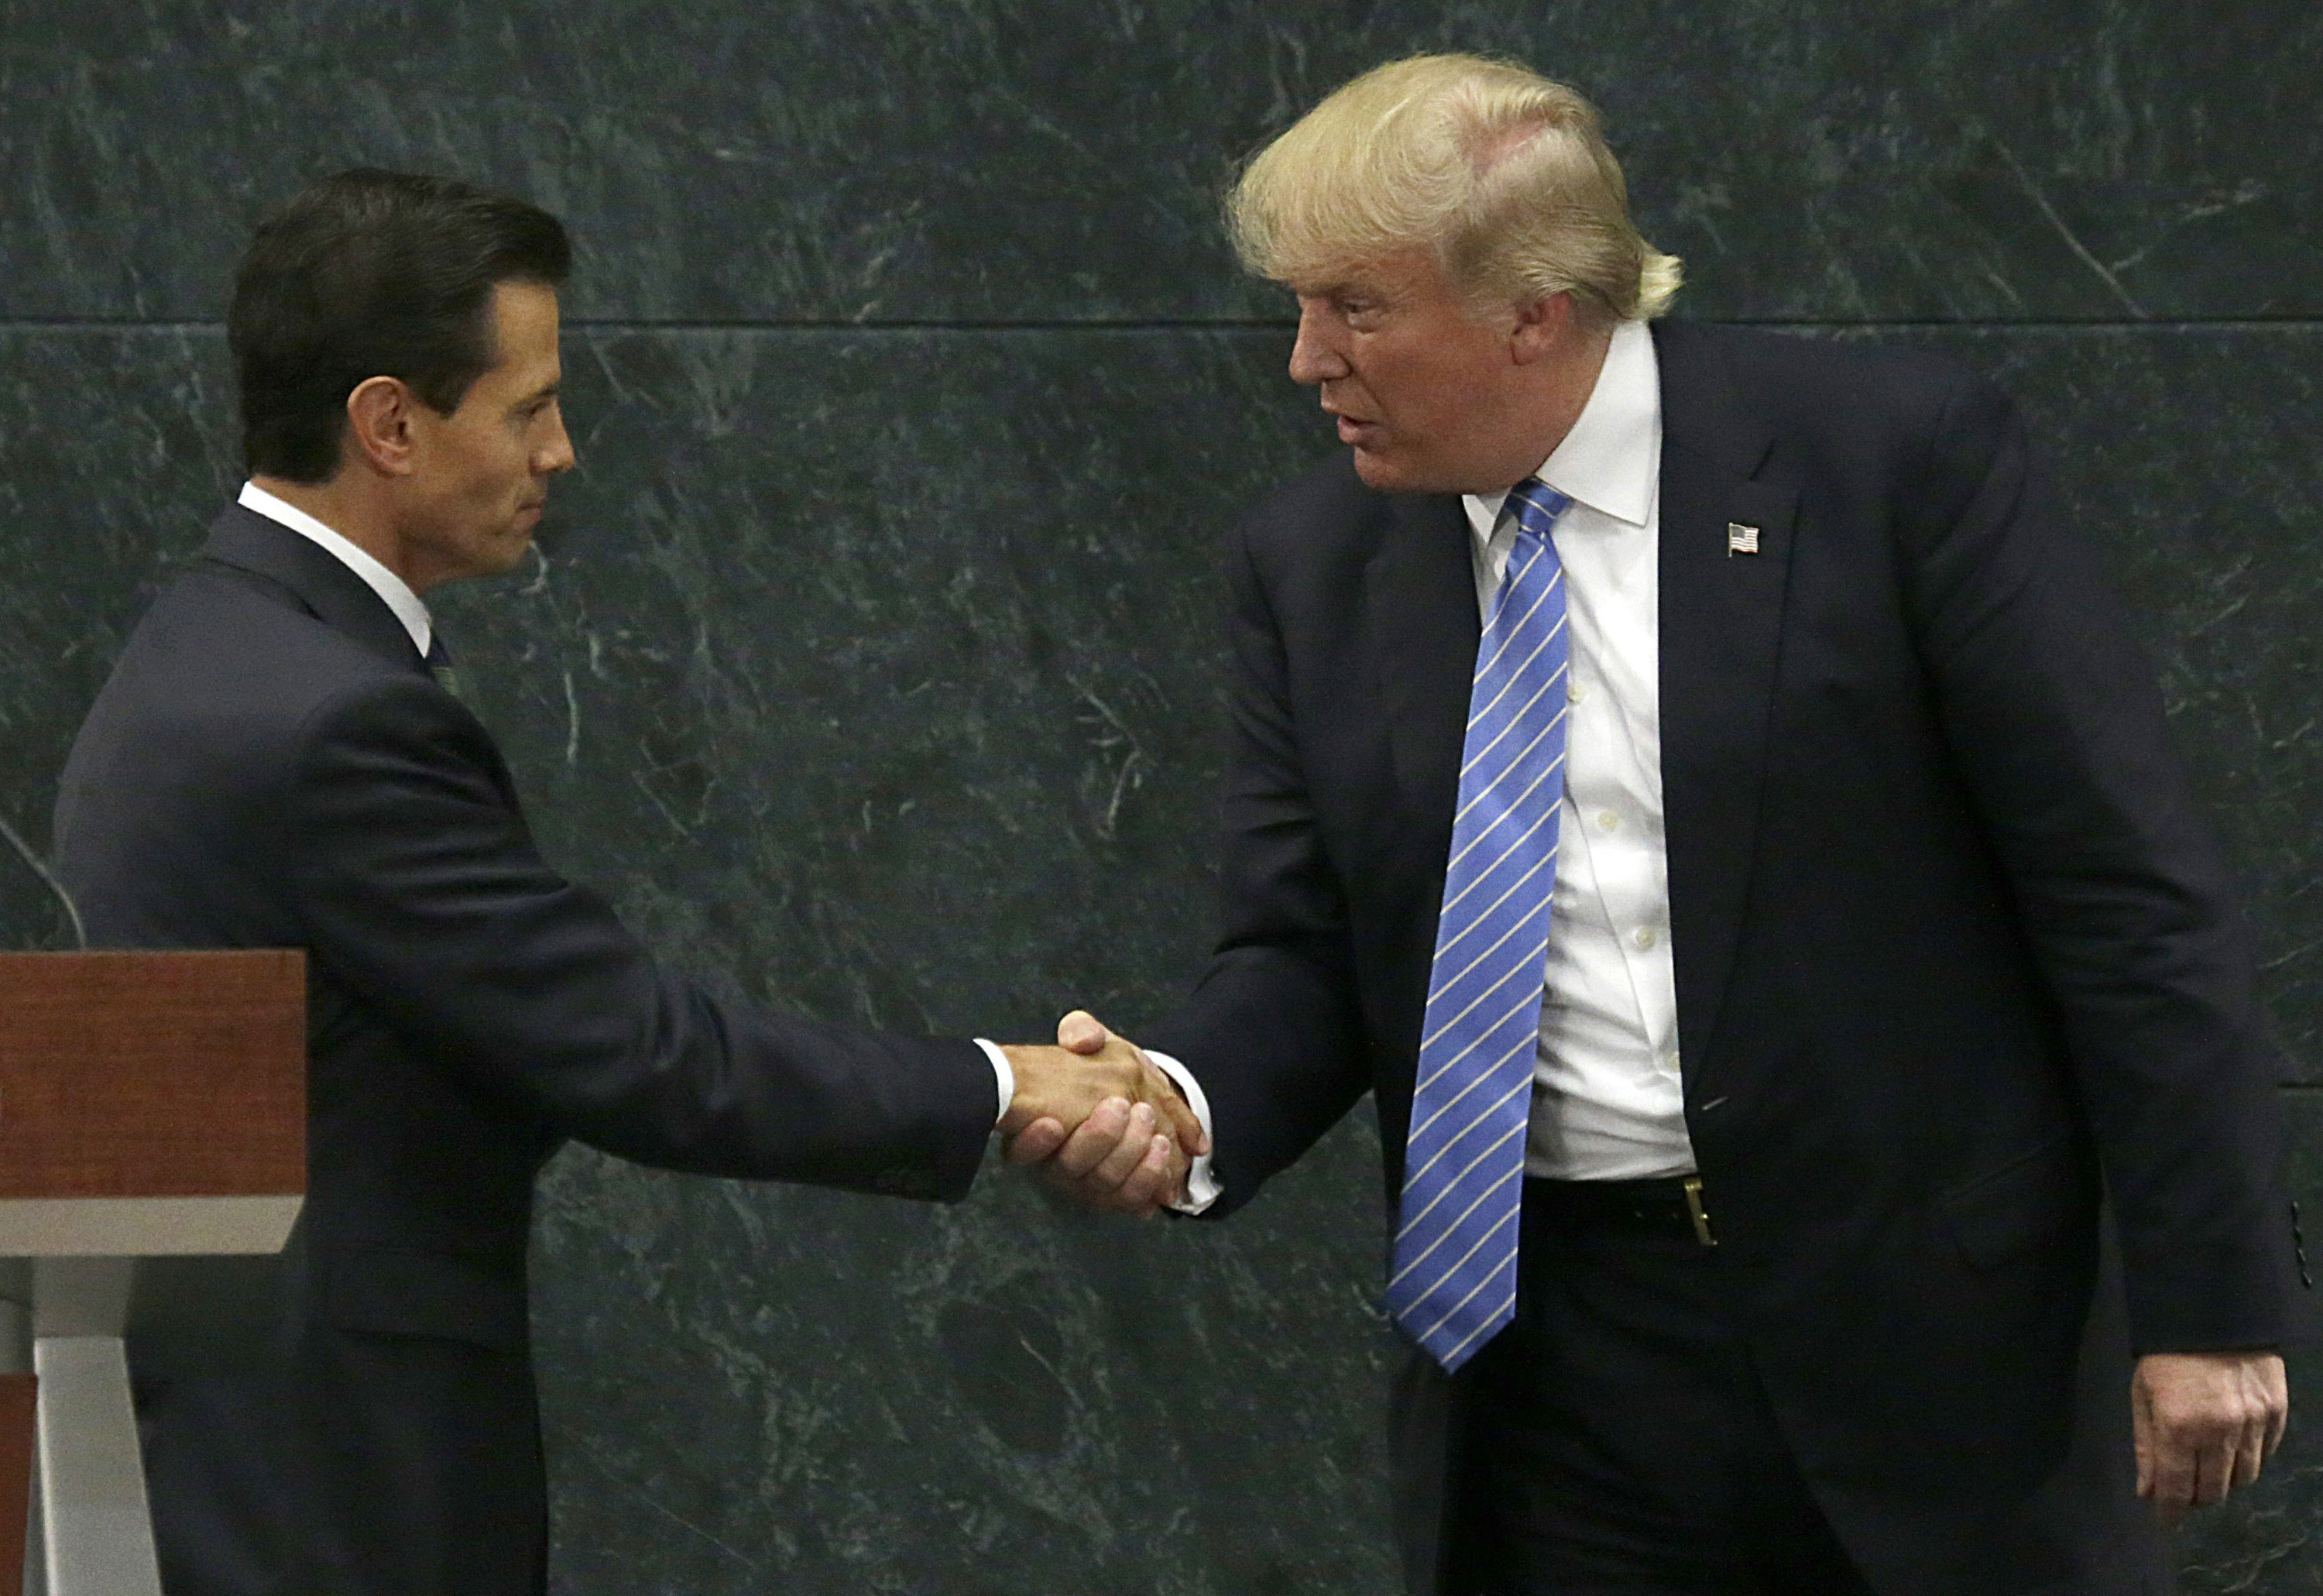 Already reeling, Mexico fears it has much to lose with Trump